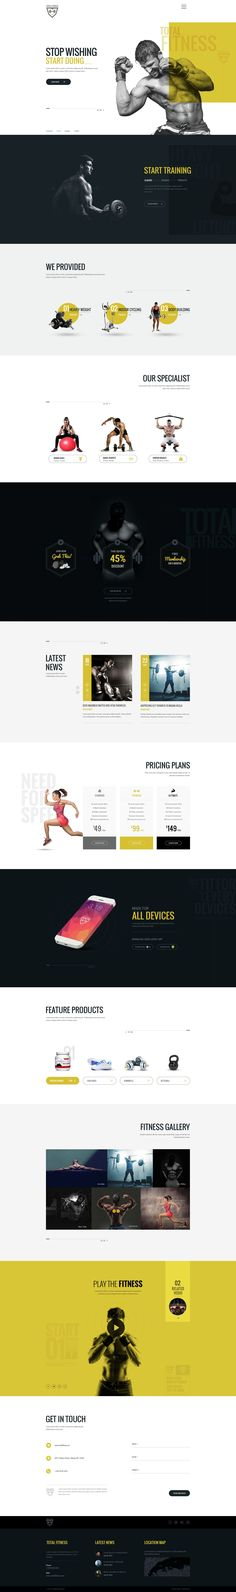 Total Fitness | All in One Fitness PSD Template by 0effortthemes | ThemeForest